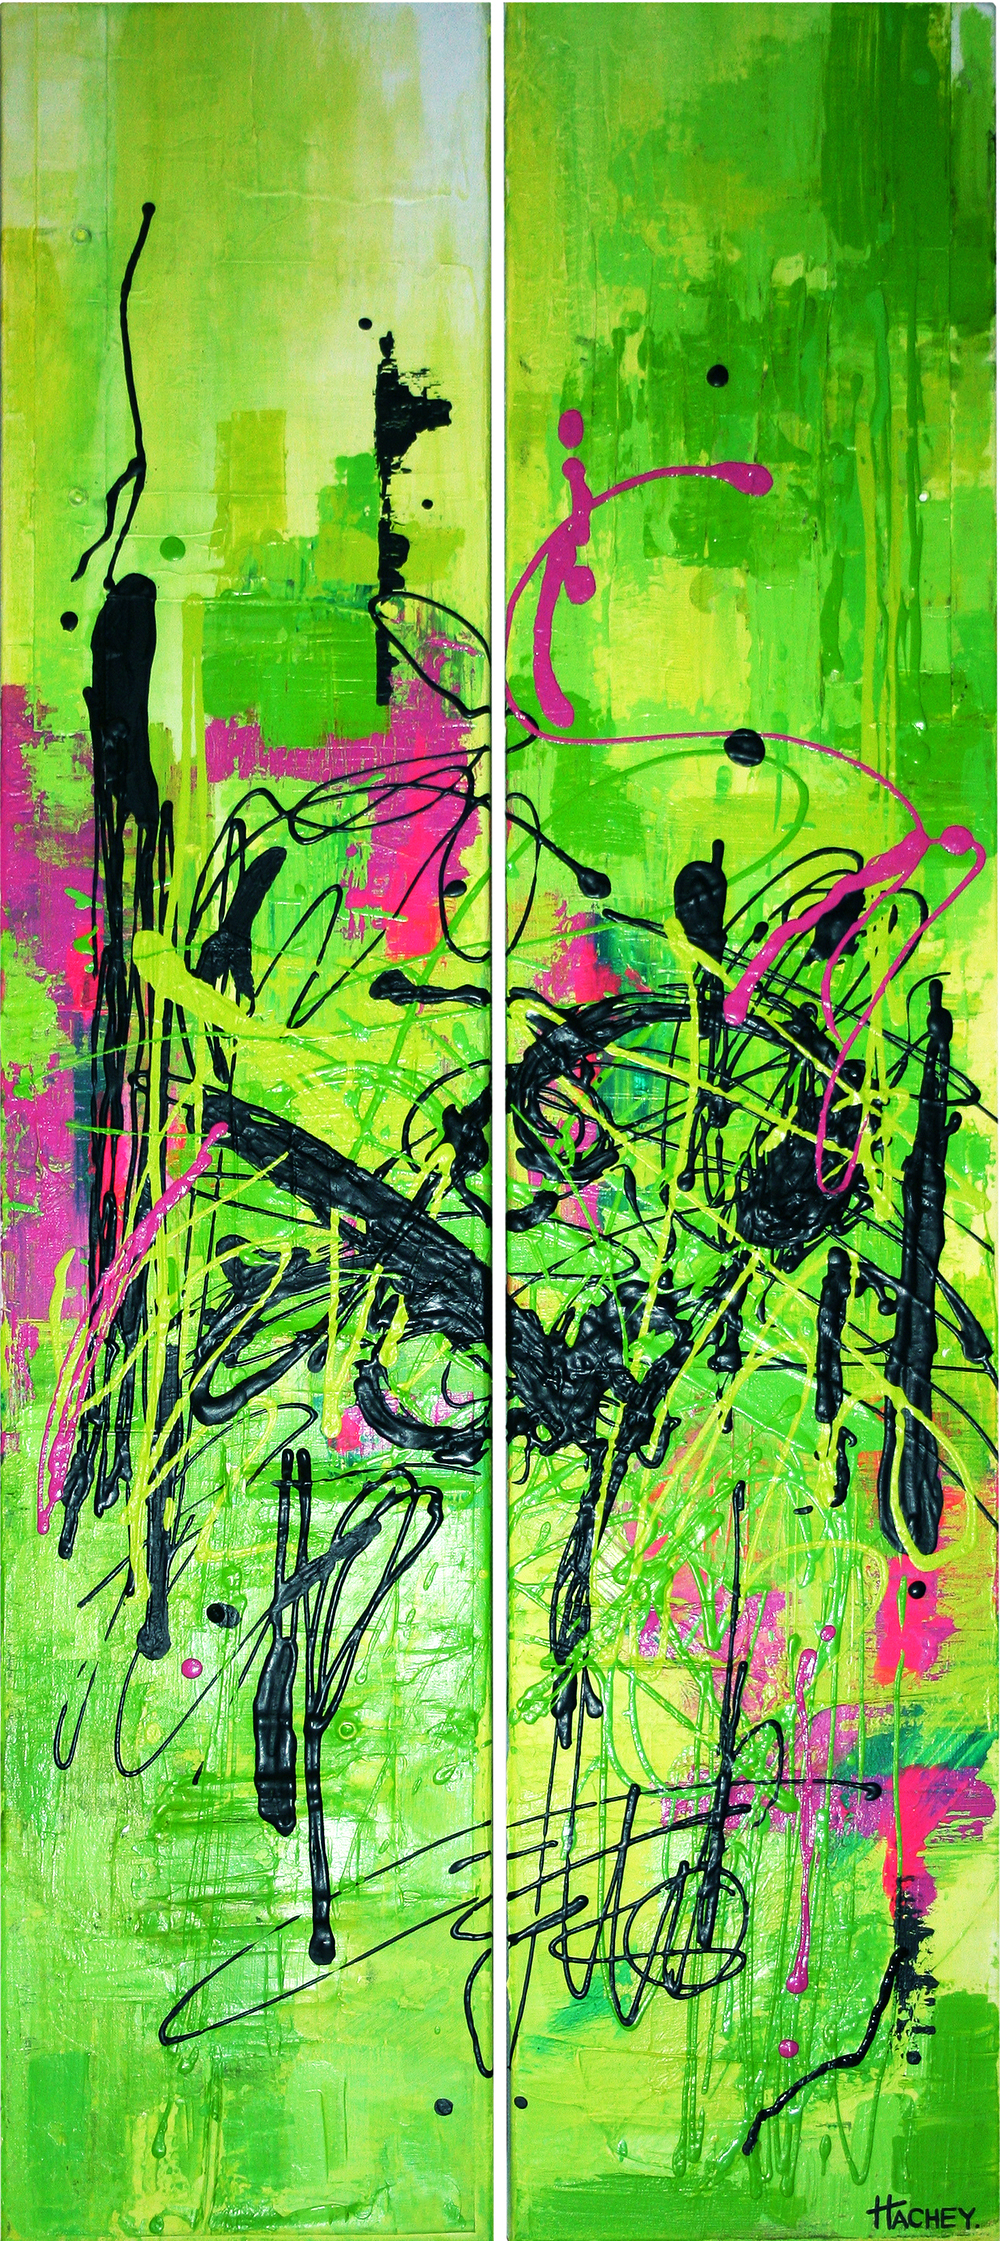 "retro 80s 20"" x 48"" acrylic on canvas  SOLD"